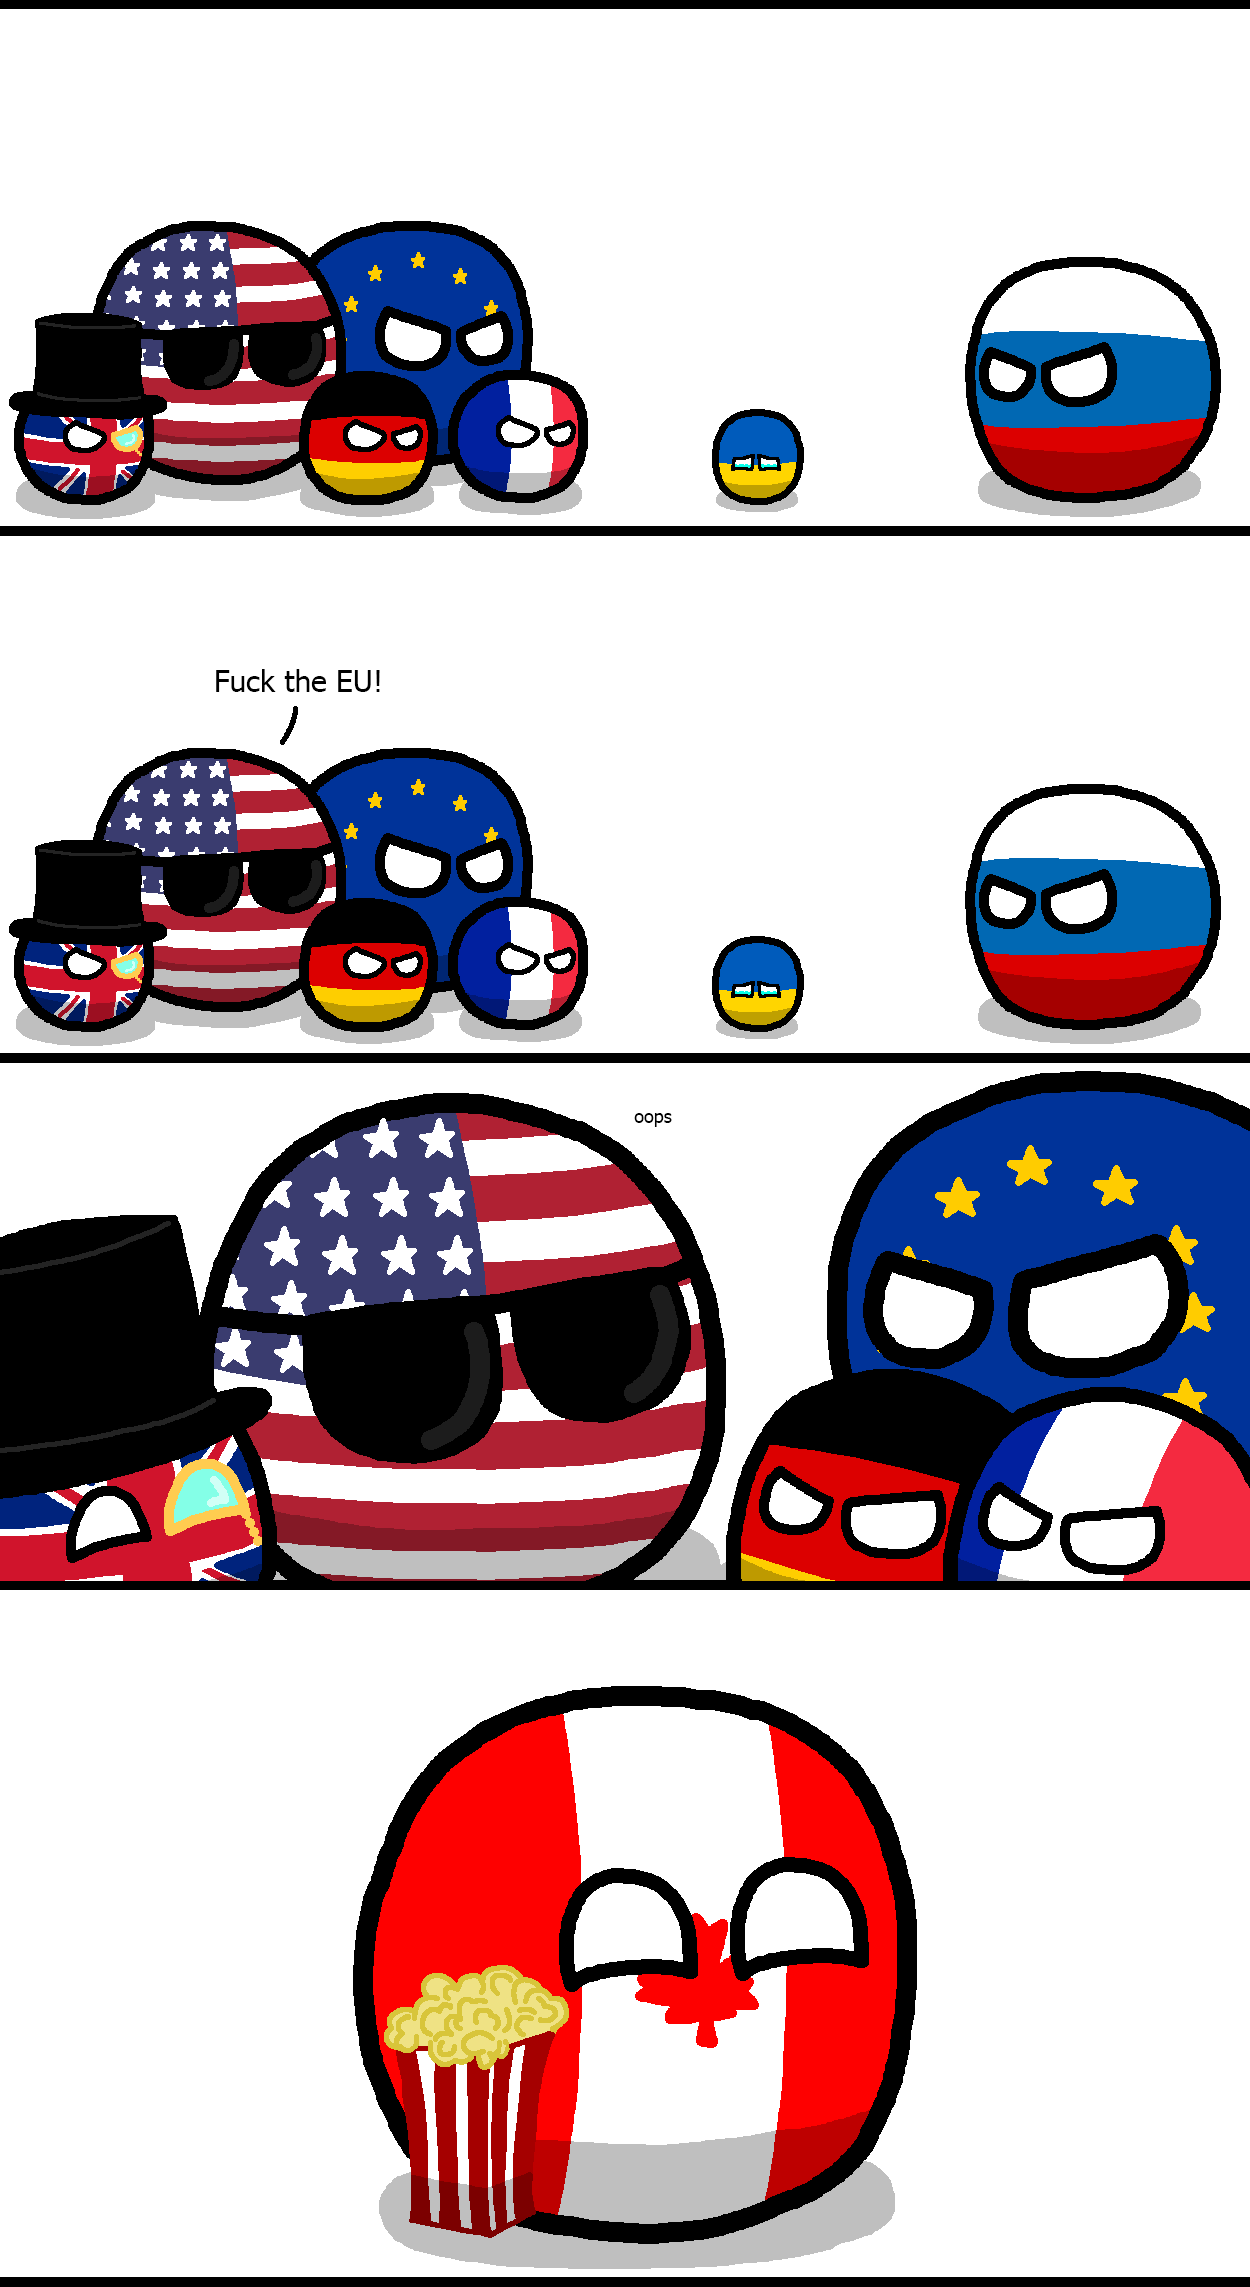 country-balls-diplomacy